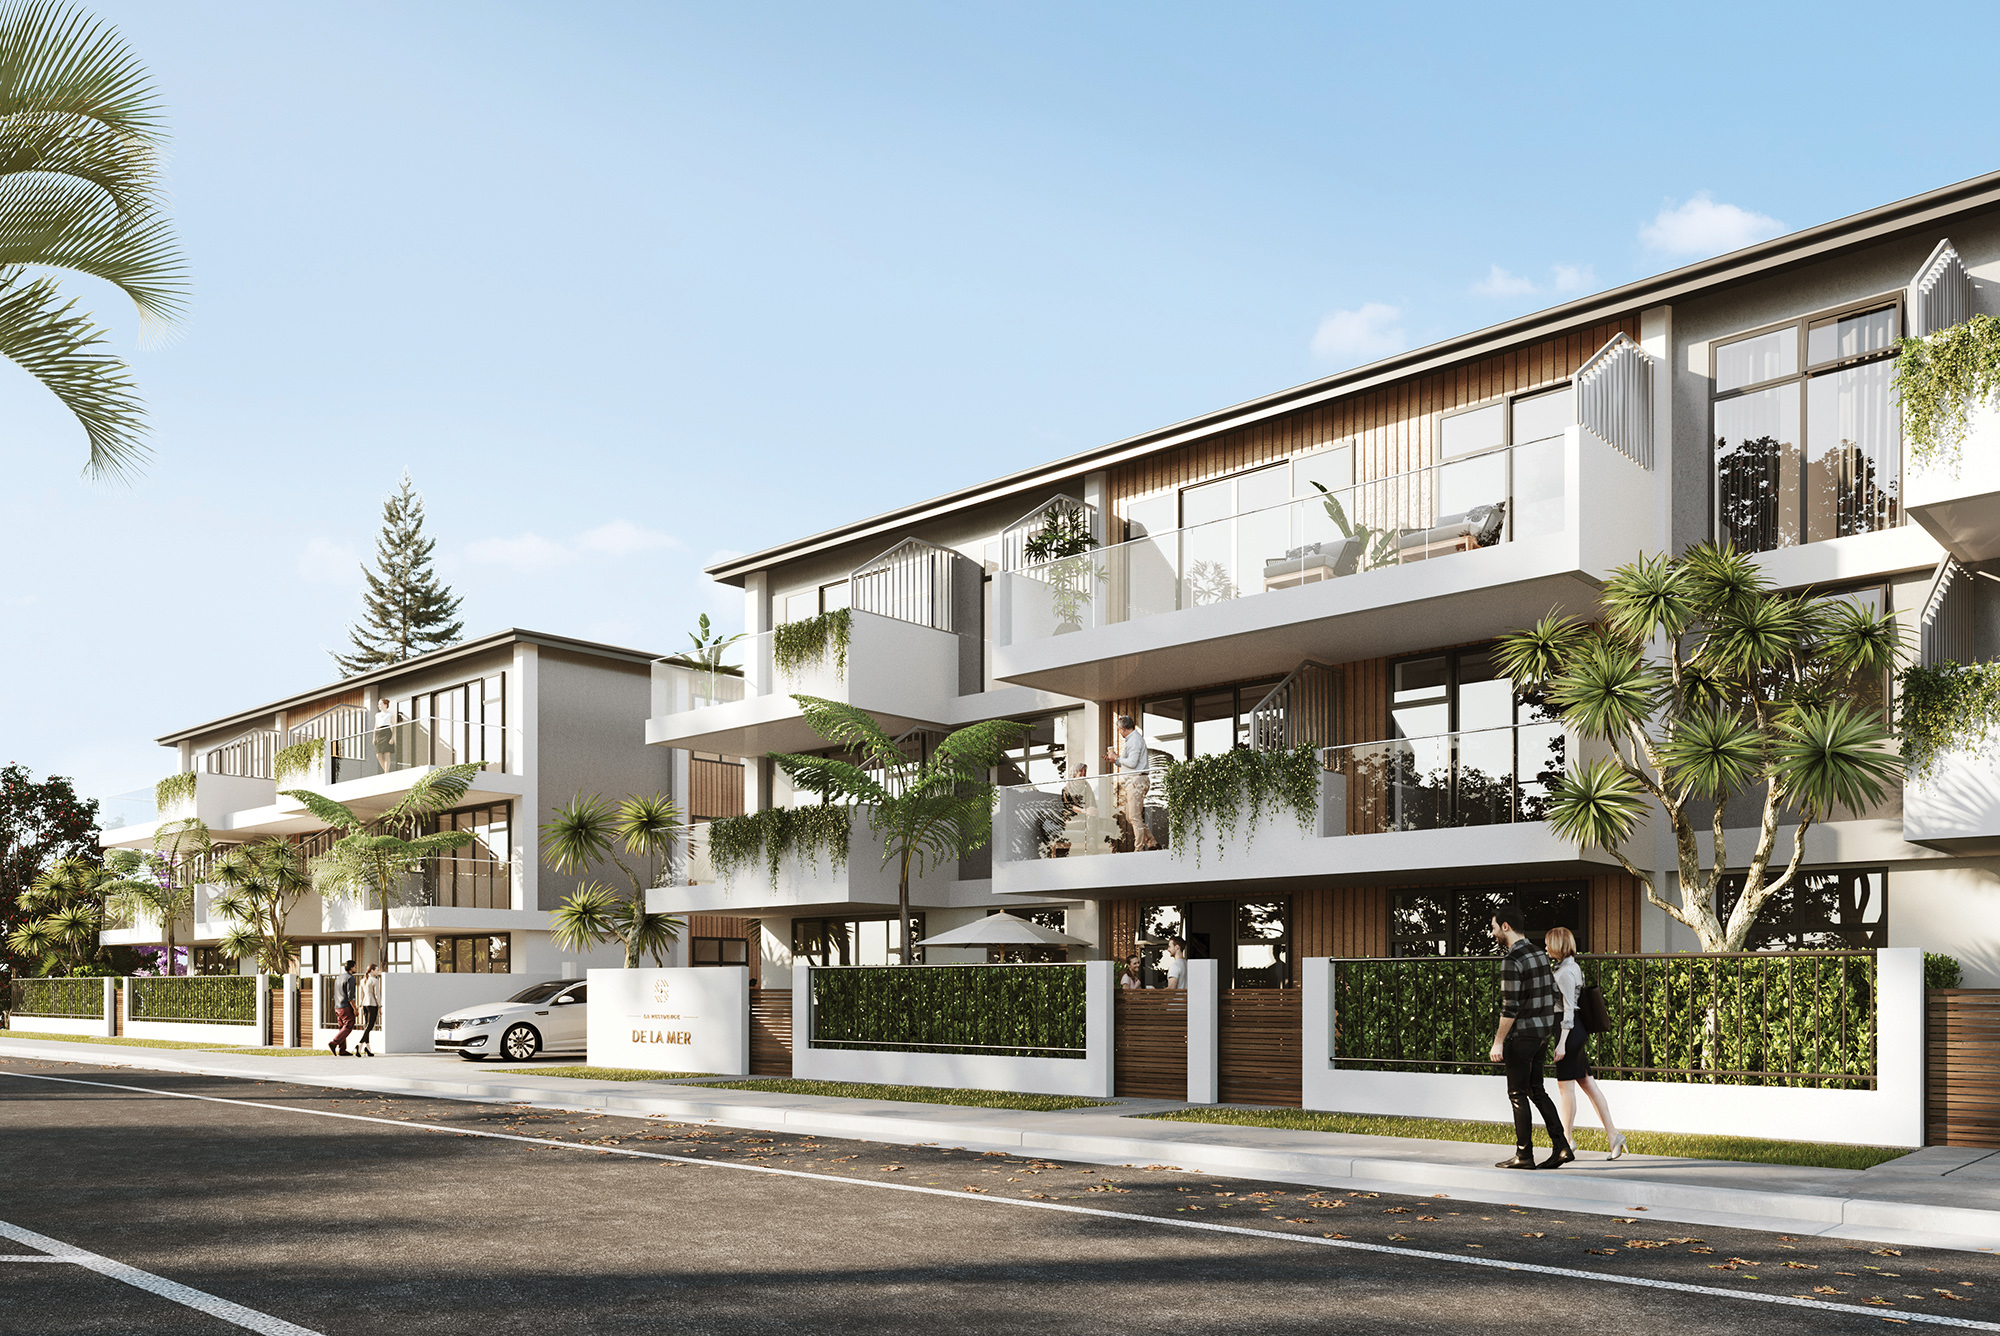 OrewaStarting From $639,000 - 1/2/3 Bedrooms1/2 Bathrooms1/2 ParkingOpen Homes: Sun, Mon, Tue | 4:30 - 5:00